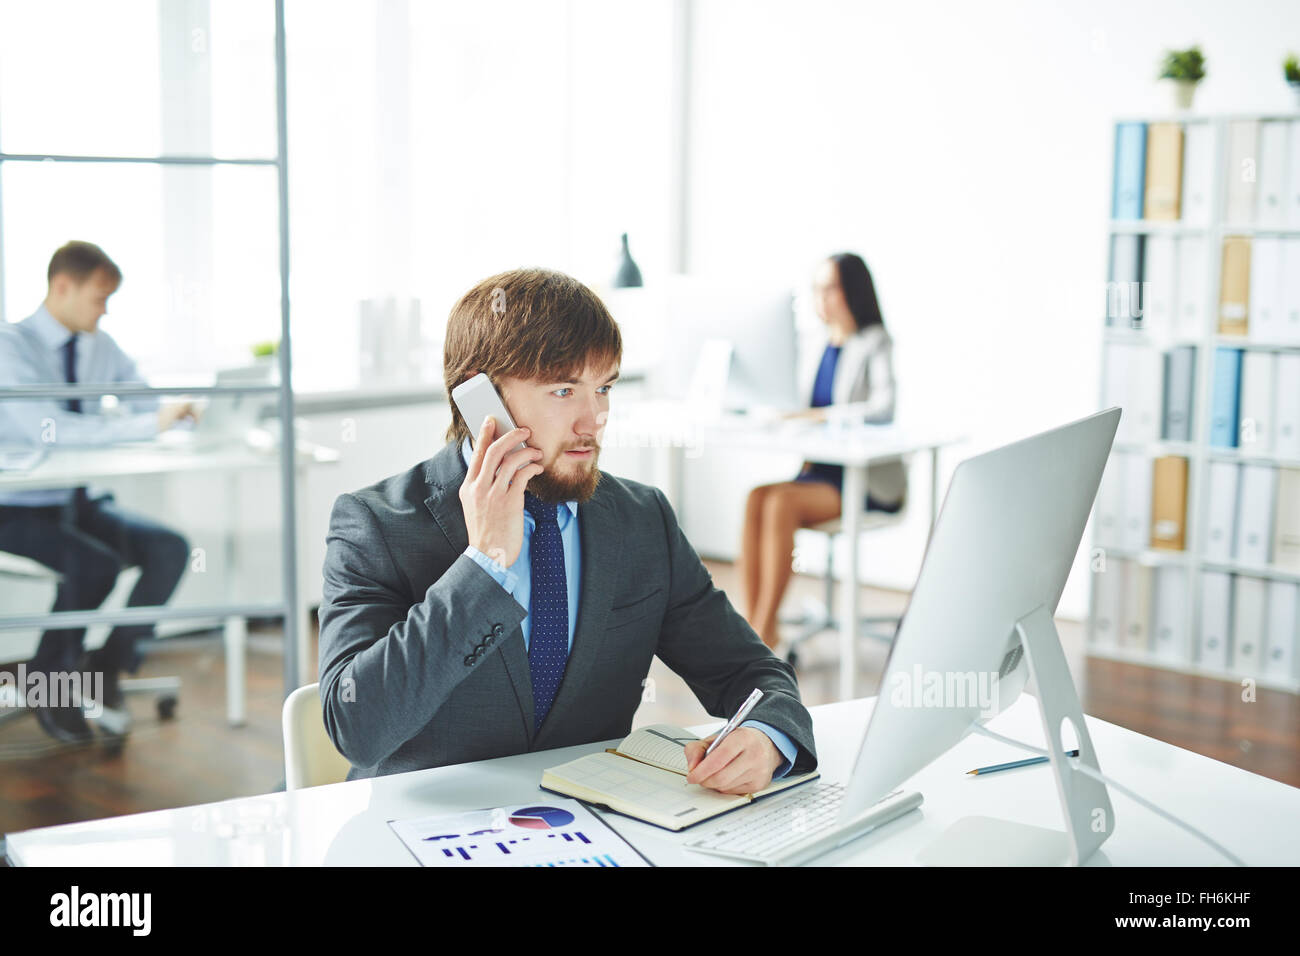 Elegant businessman calling and making notes in front of computer in office - Stock Image